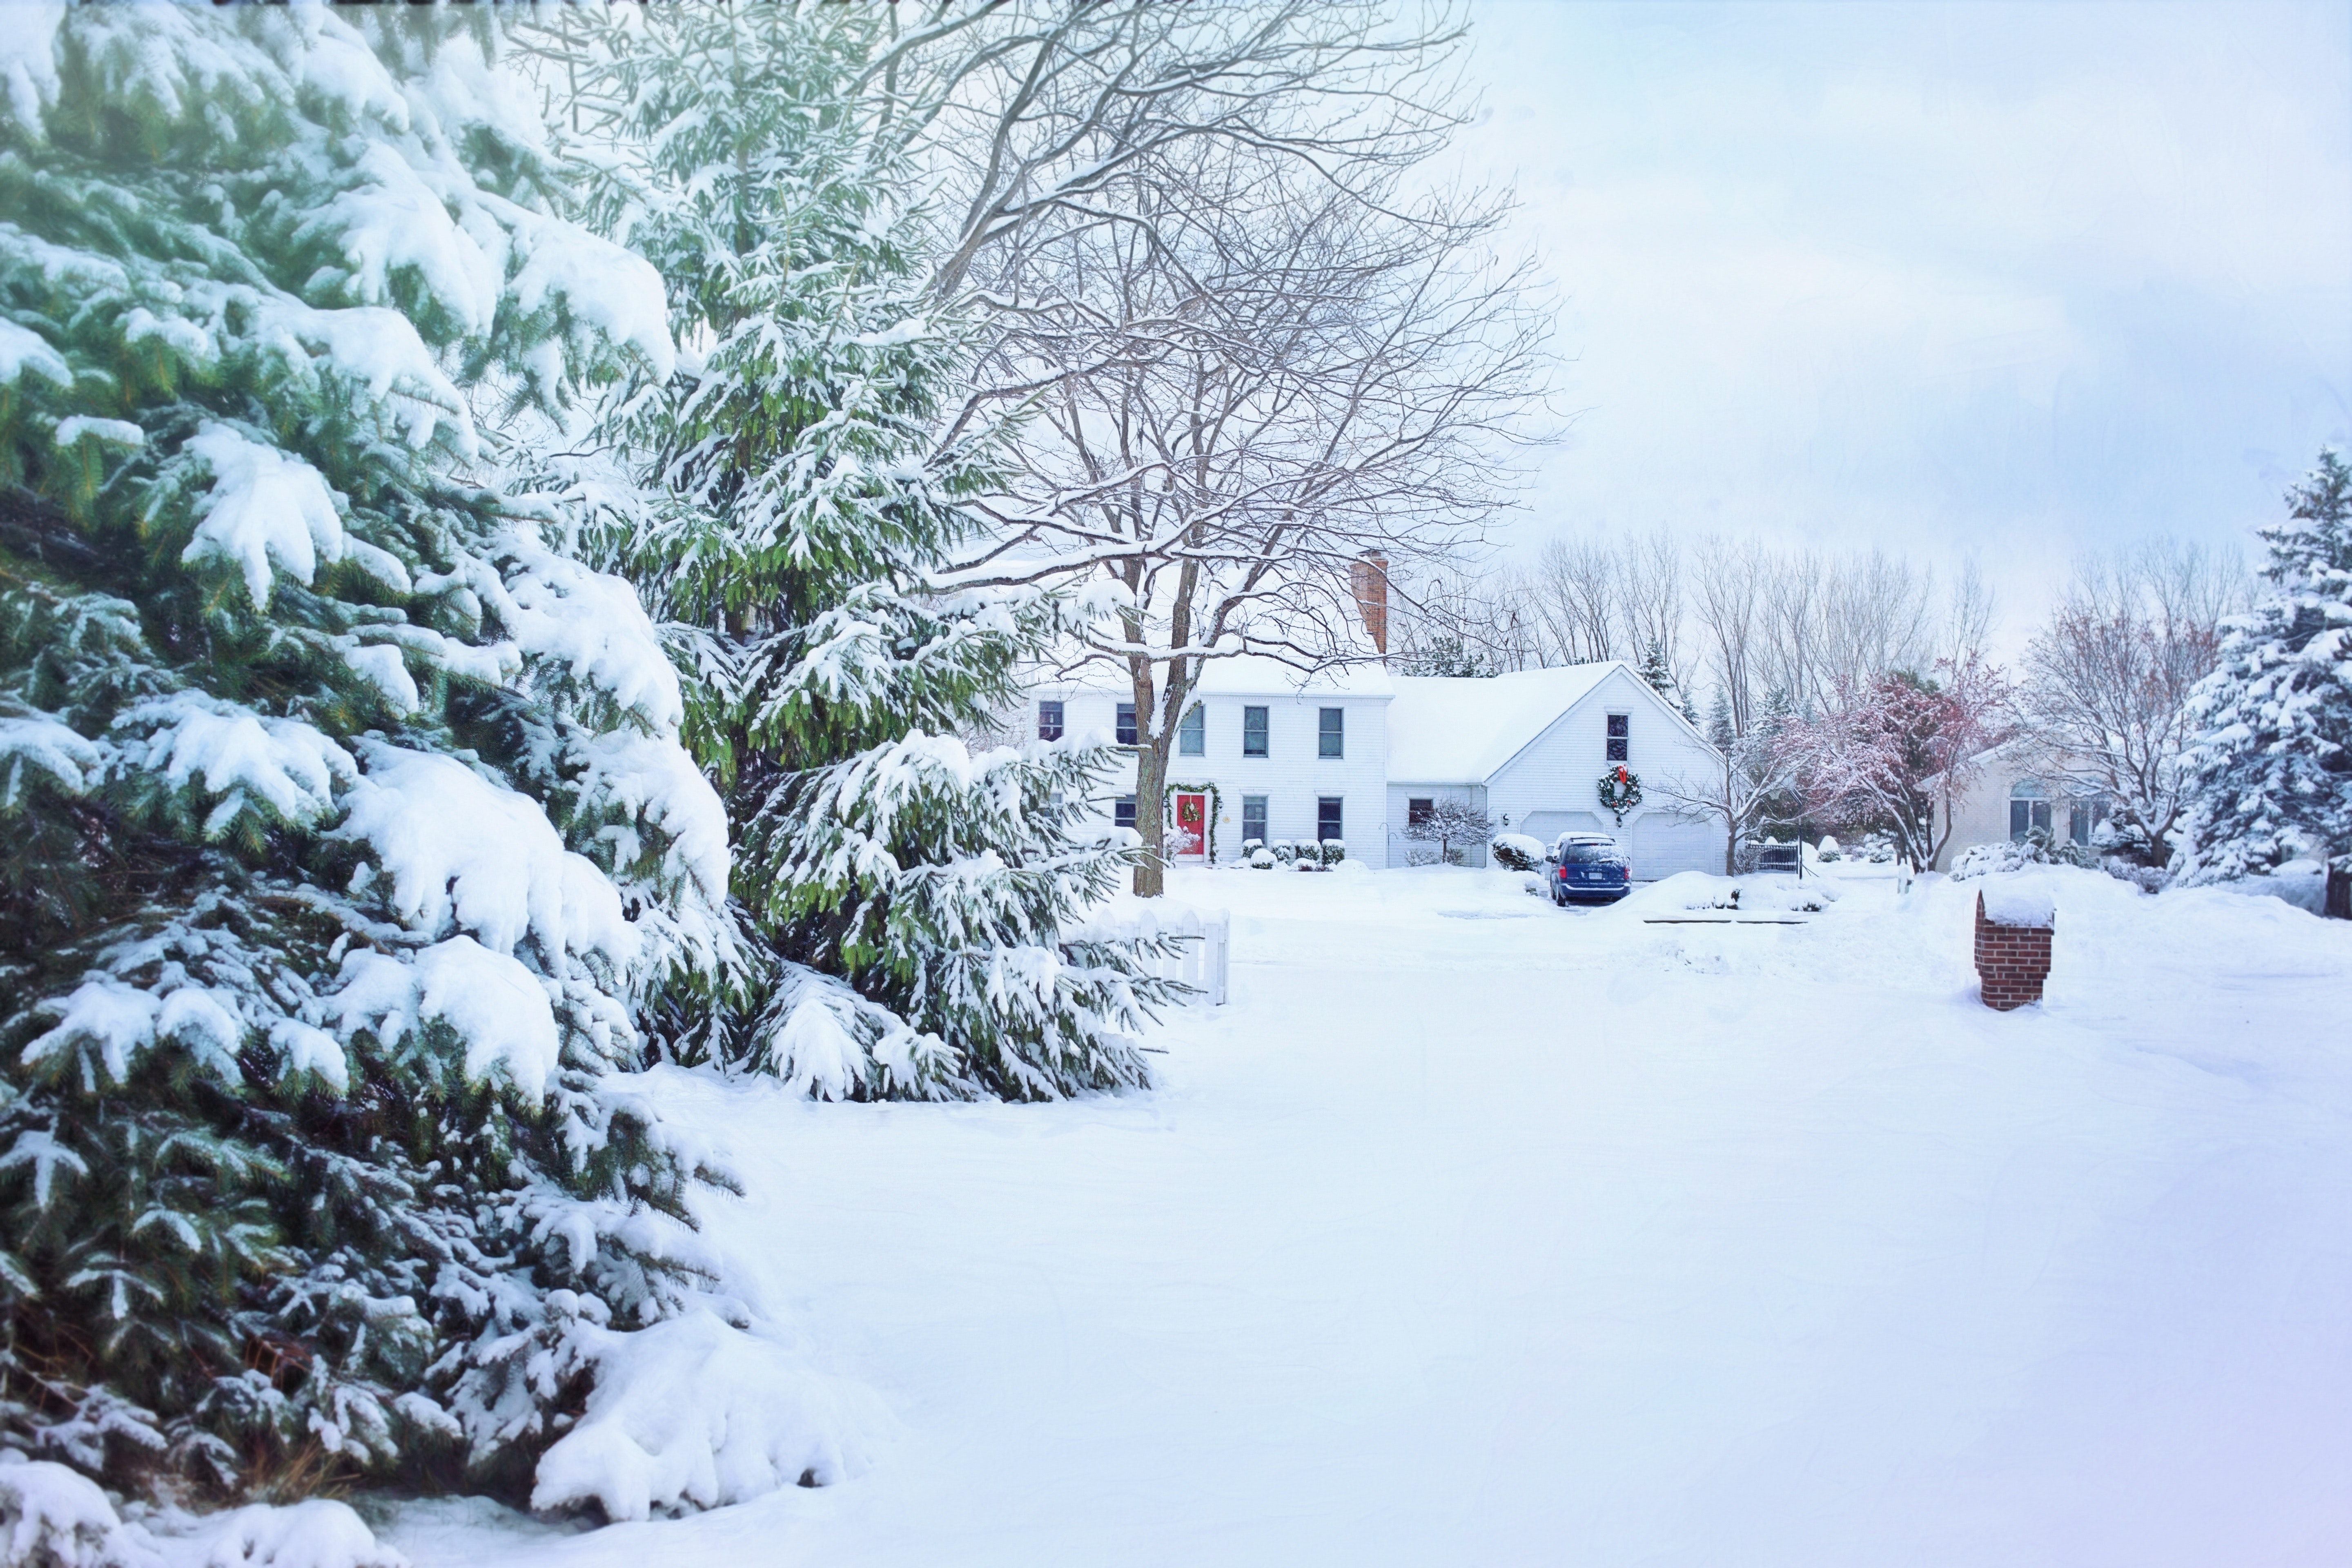 5 Reasons Why Selling Your Home In Winter Makes Sense